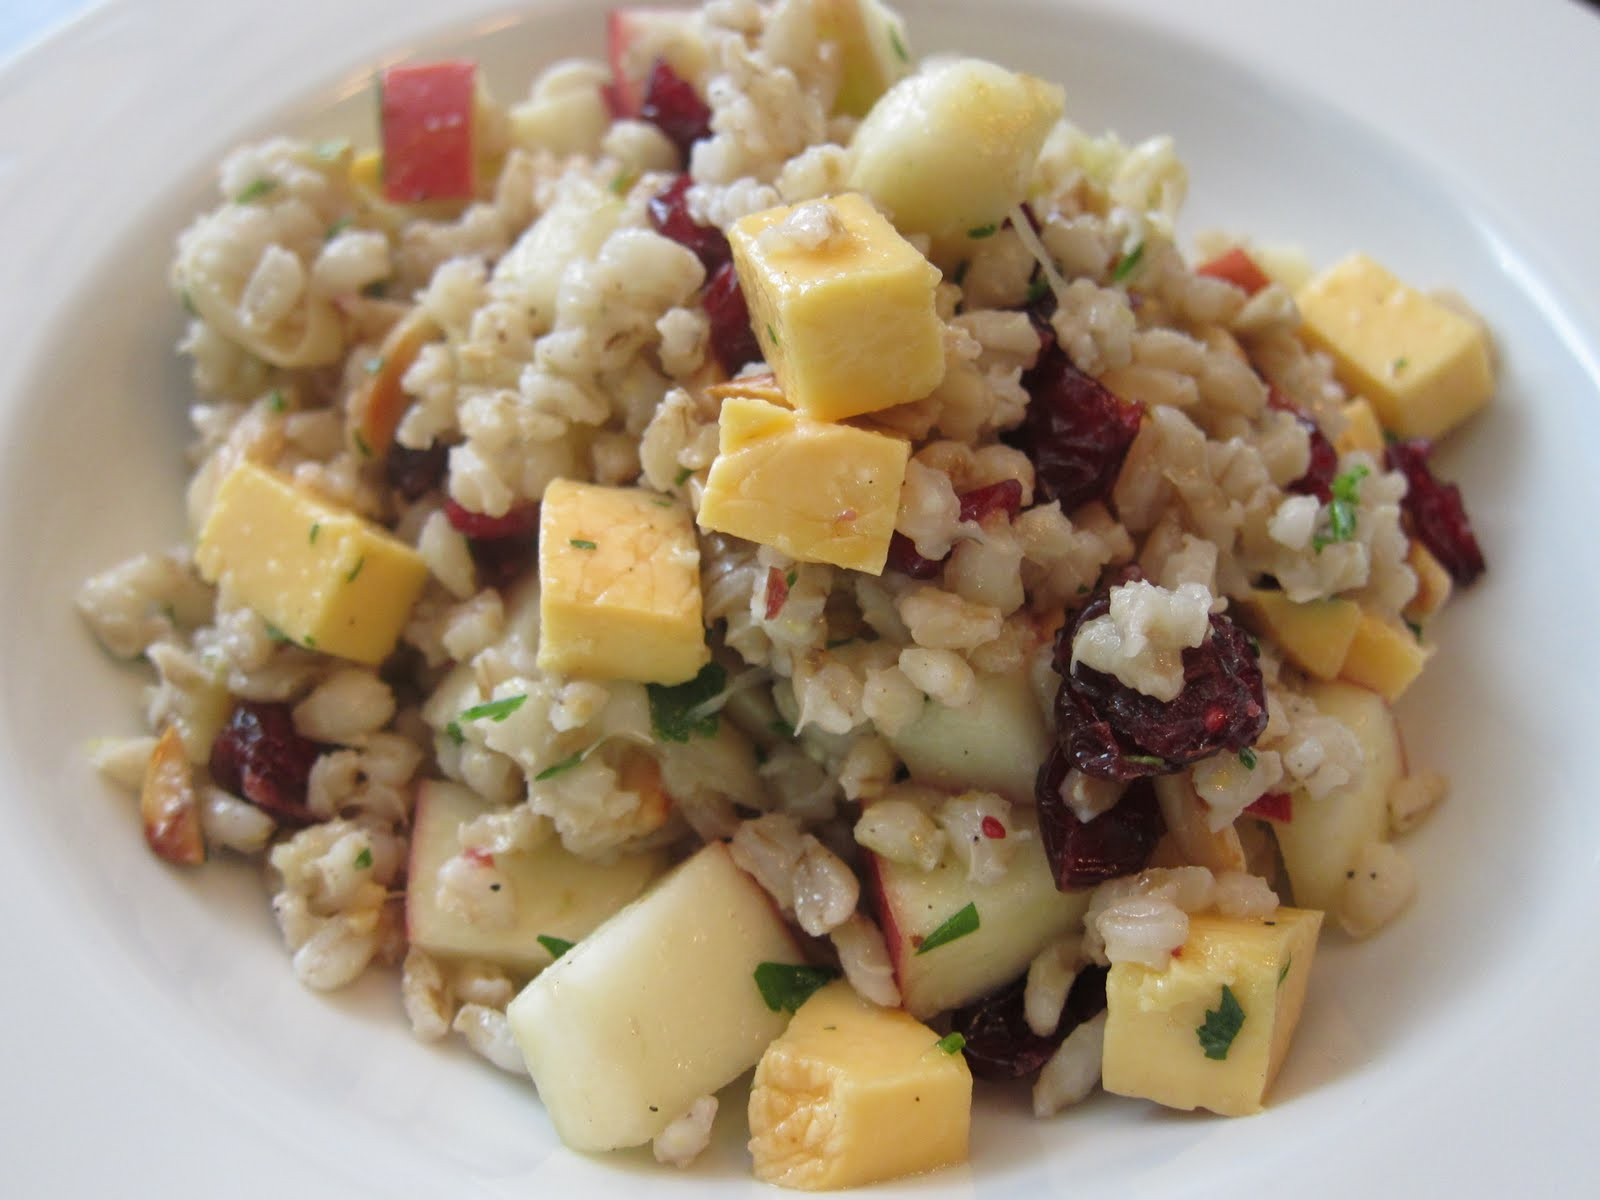 Apple, almond, and smoked mozzarella farro barley salad.